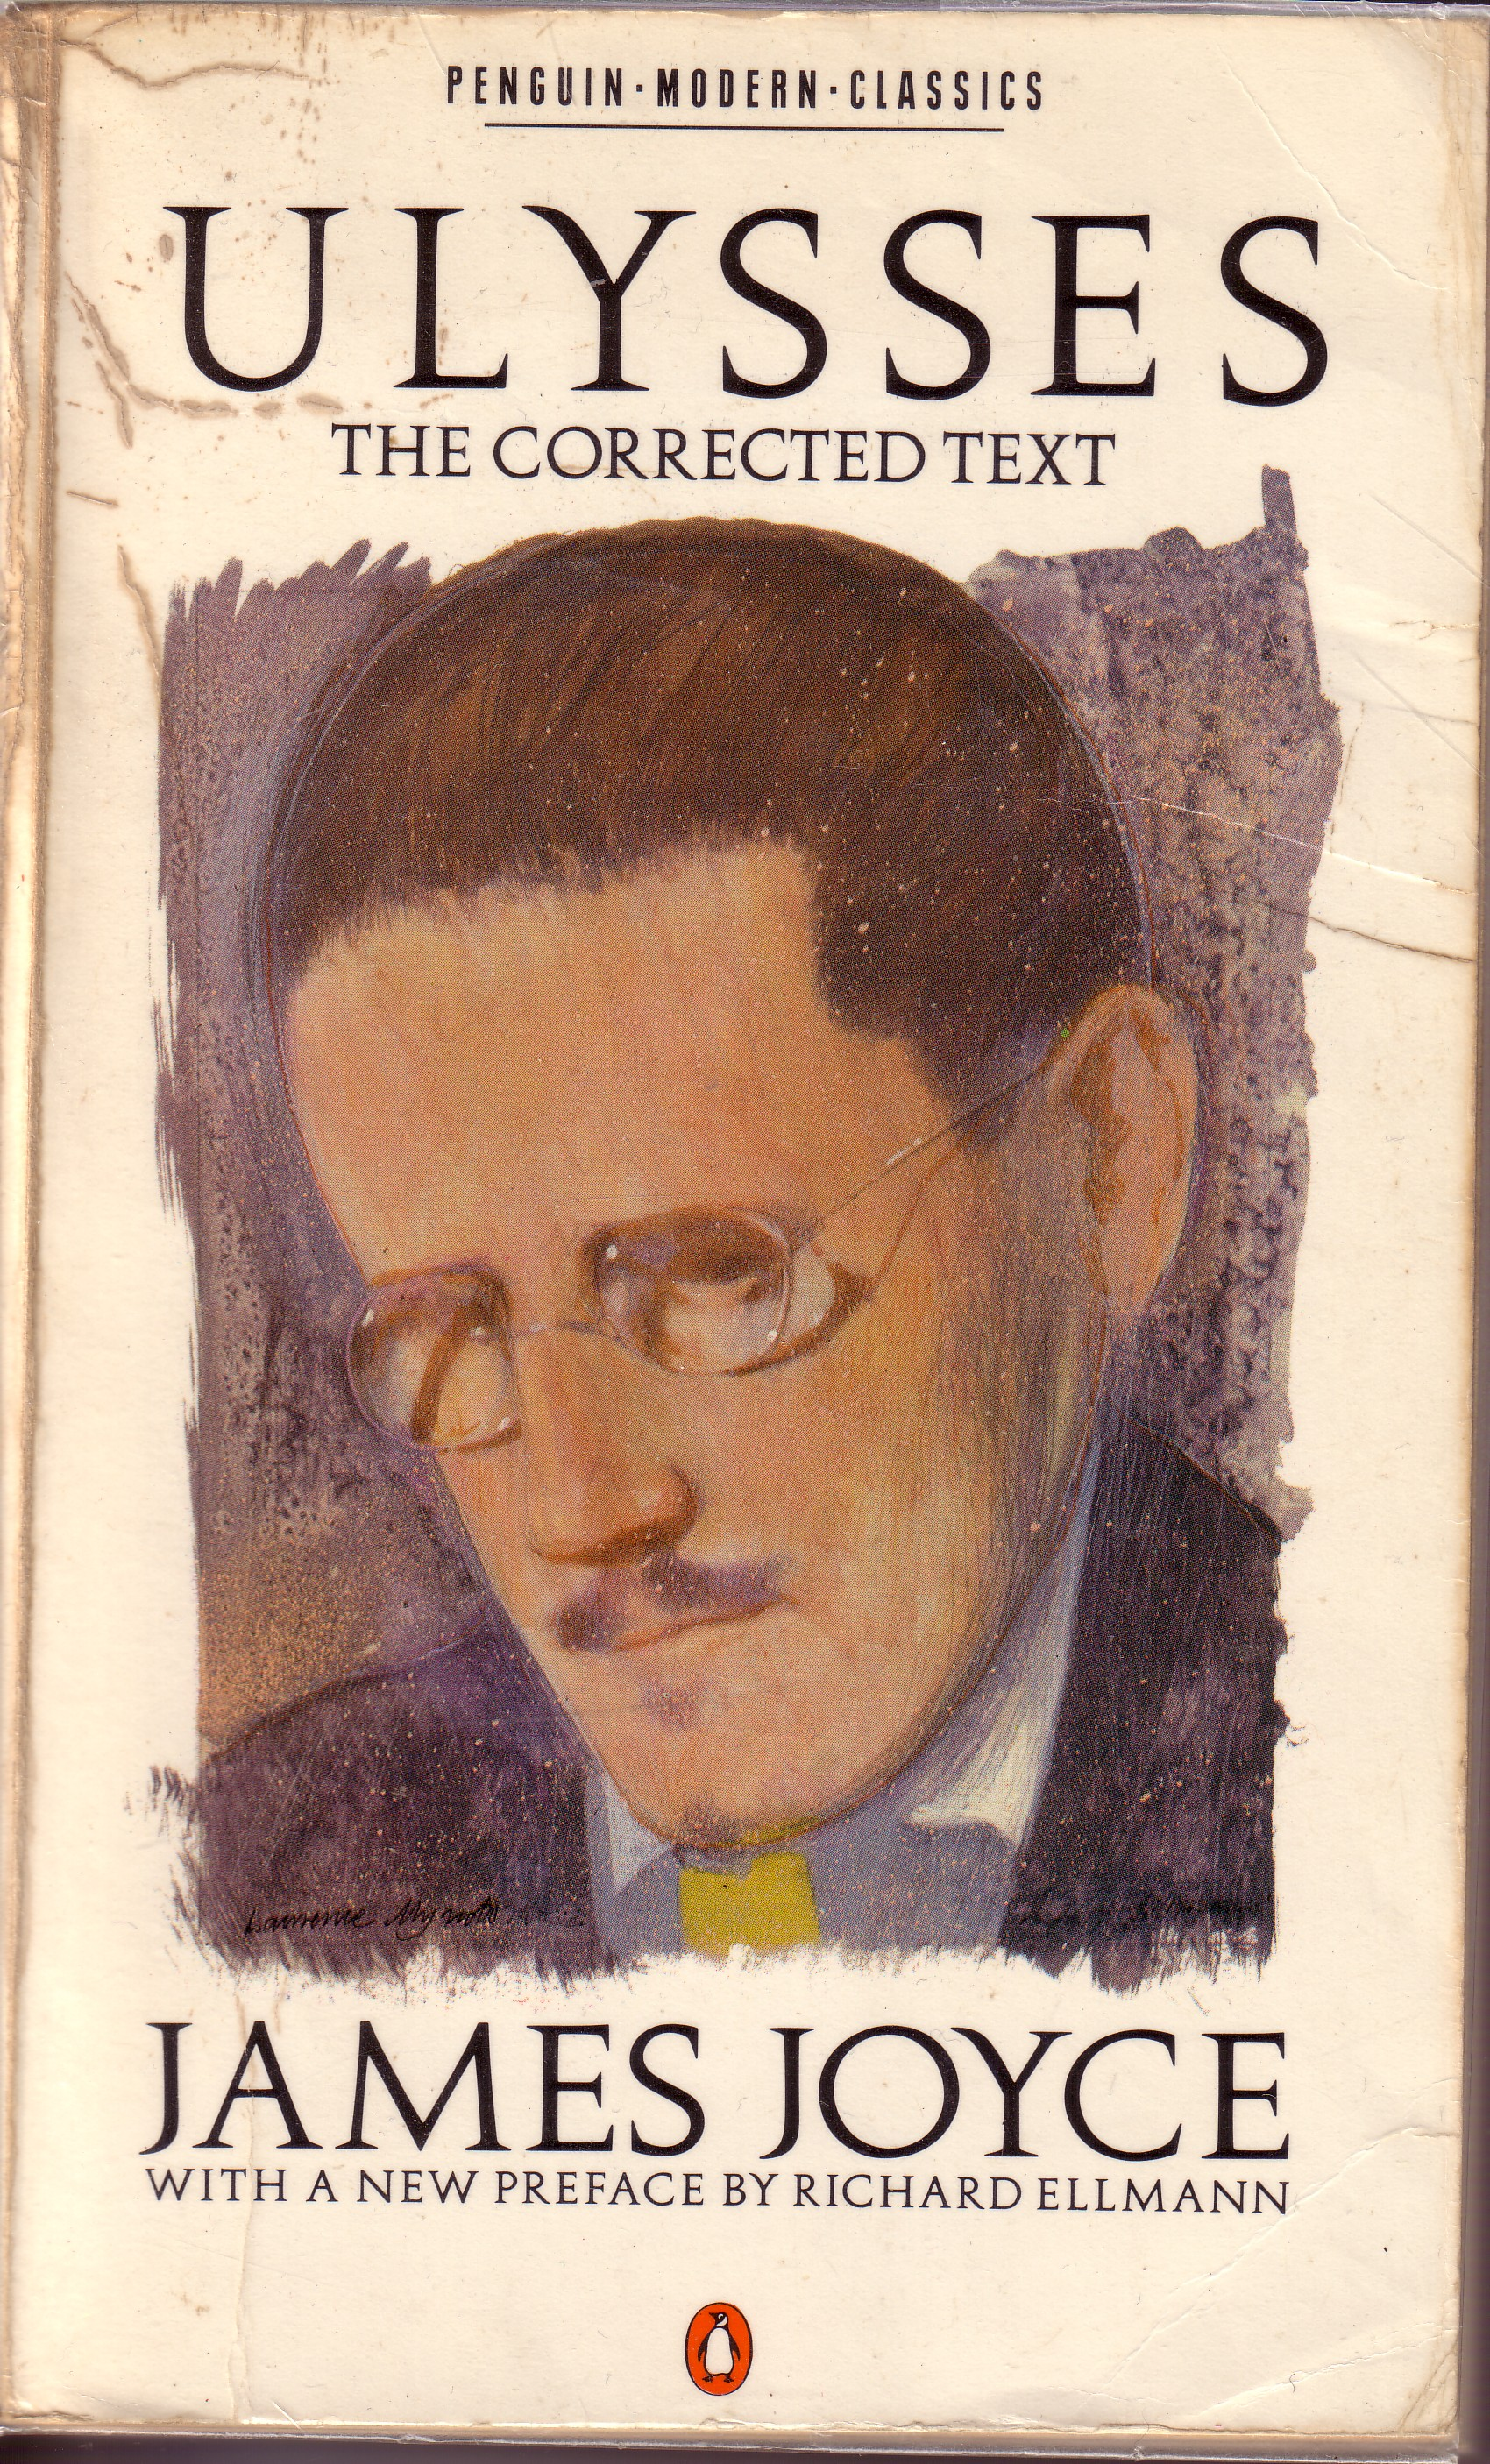 an analysis of the obscene elements of ulysses by james joyce An analysis of the obscene elements of ulysses by james joyce pages 4 words 2,547 view full essay more essays like this: james joyce, ulysses, obscene elements.